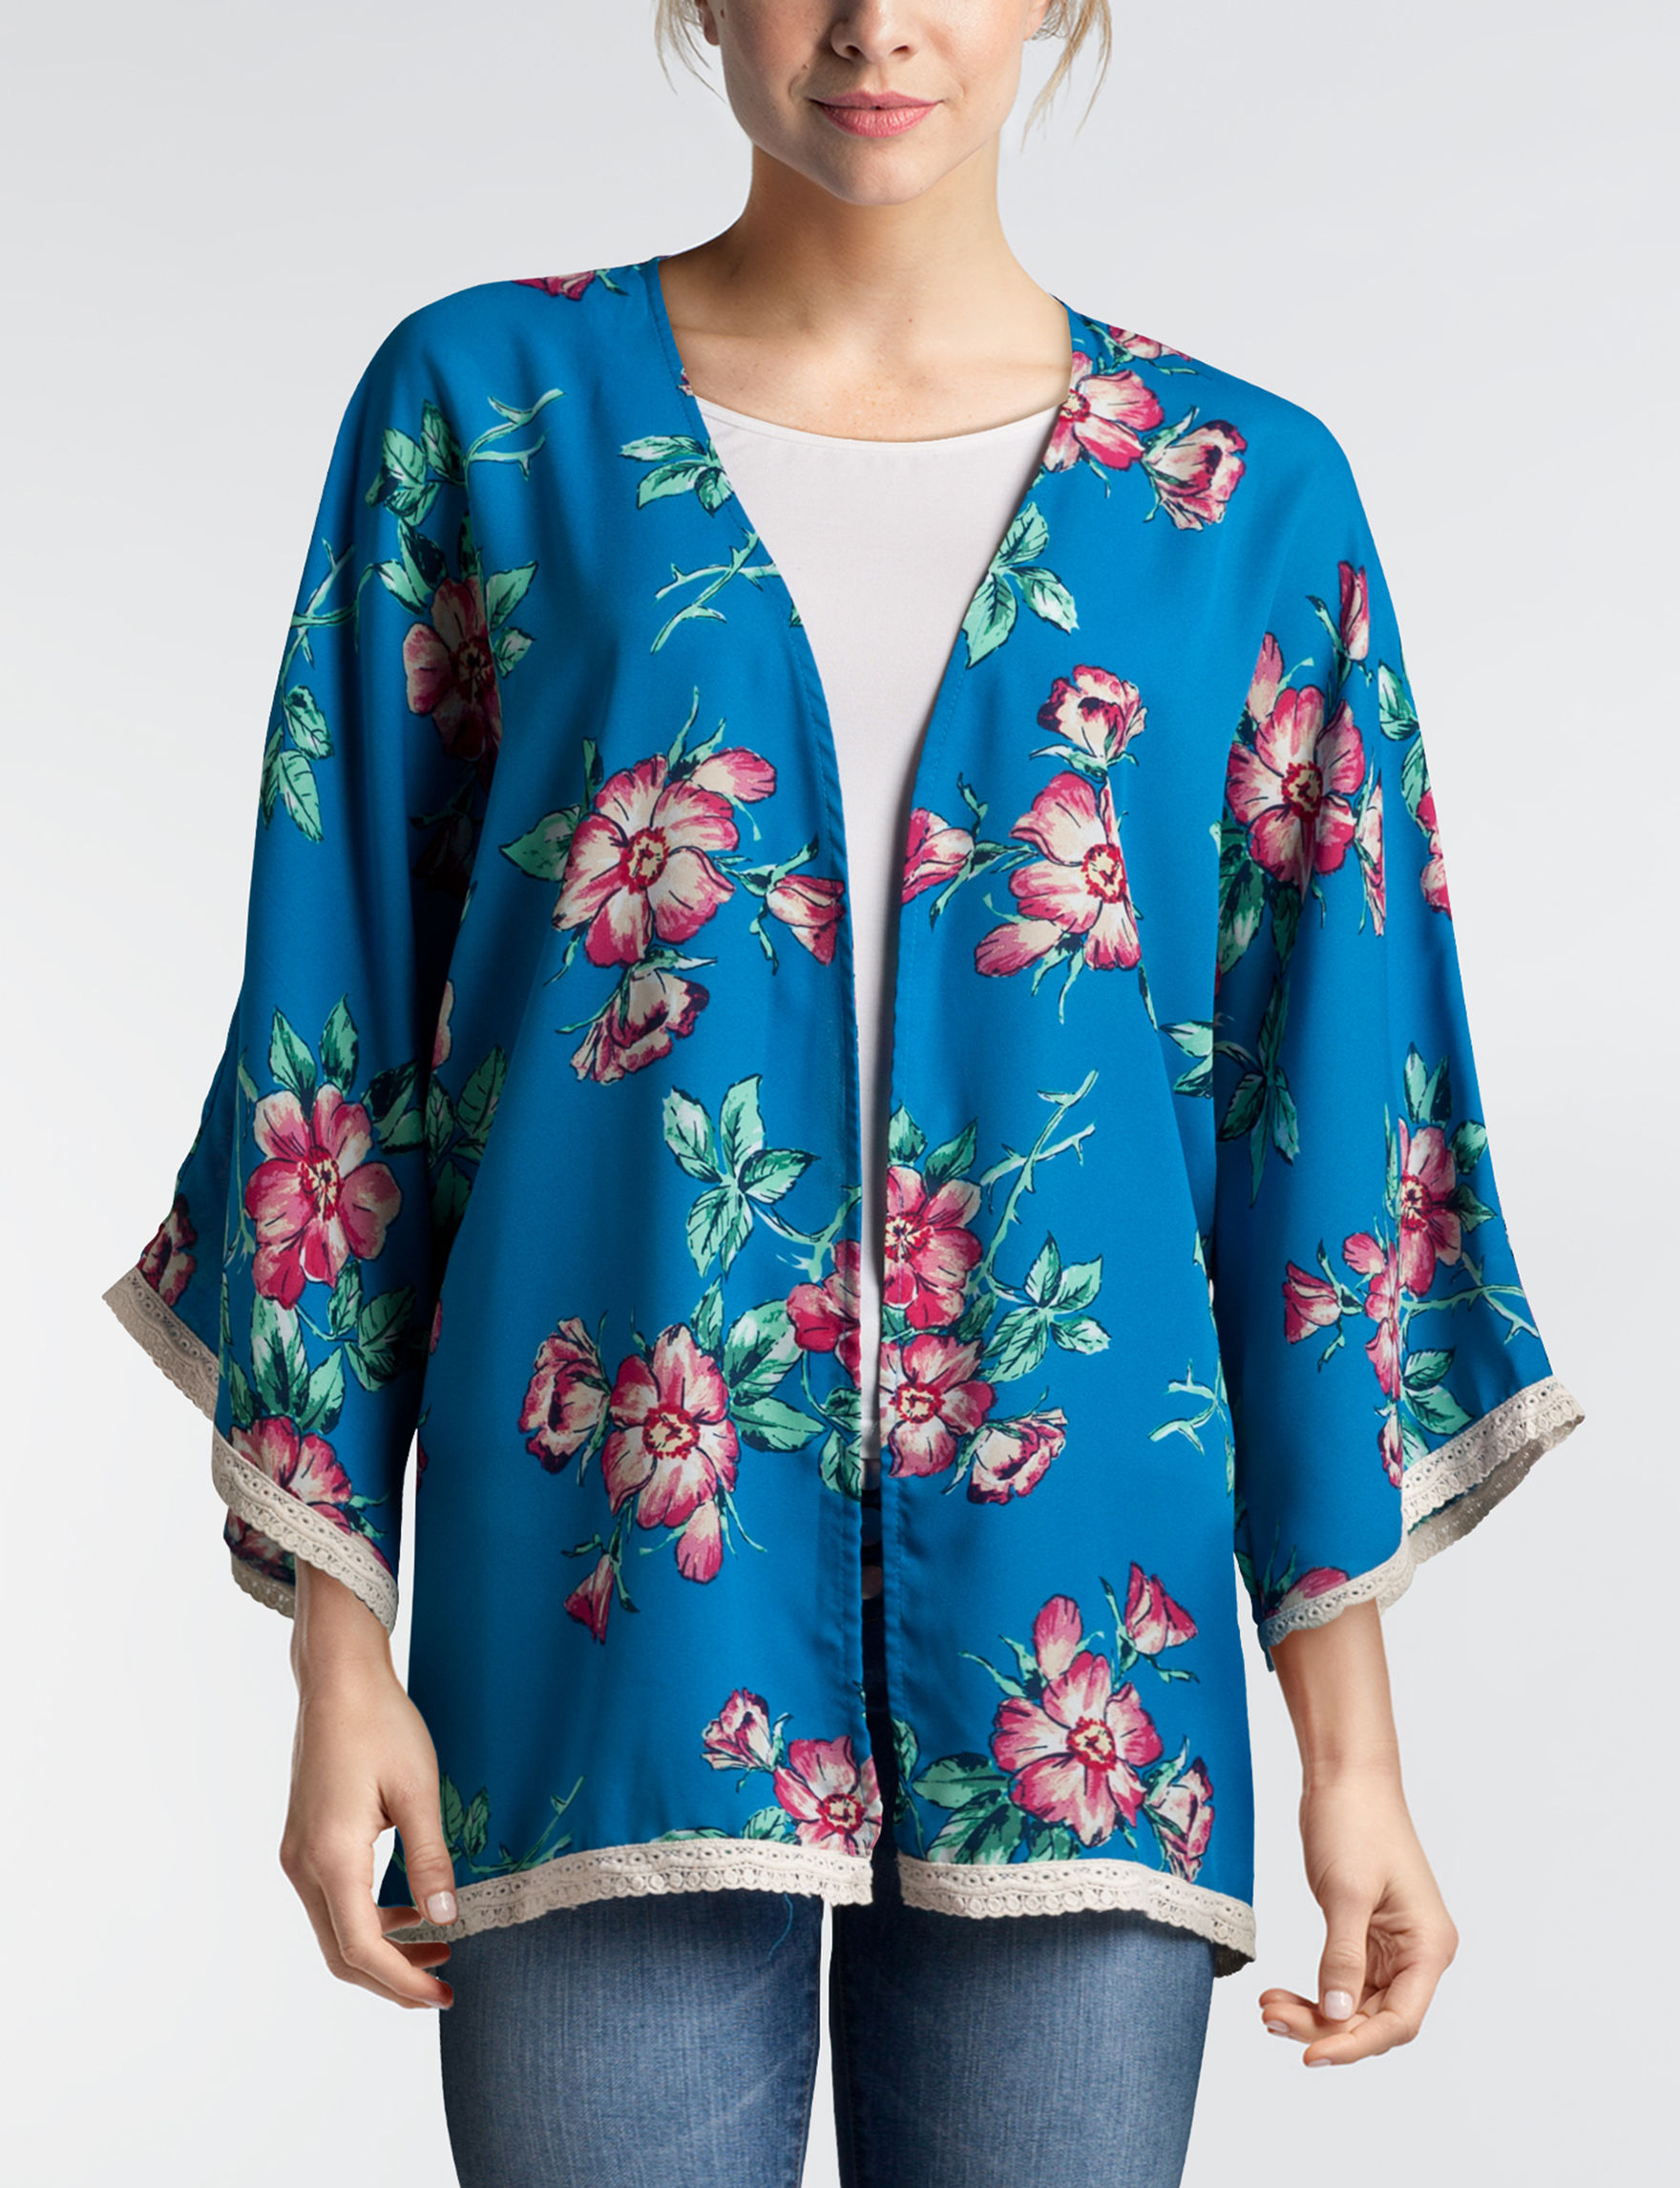 Wishful Park Blue Floral Kimonos & Toppers